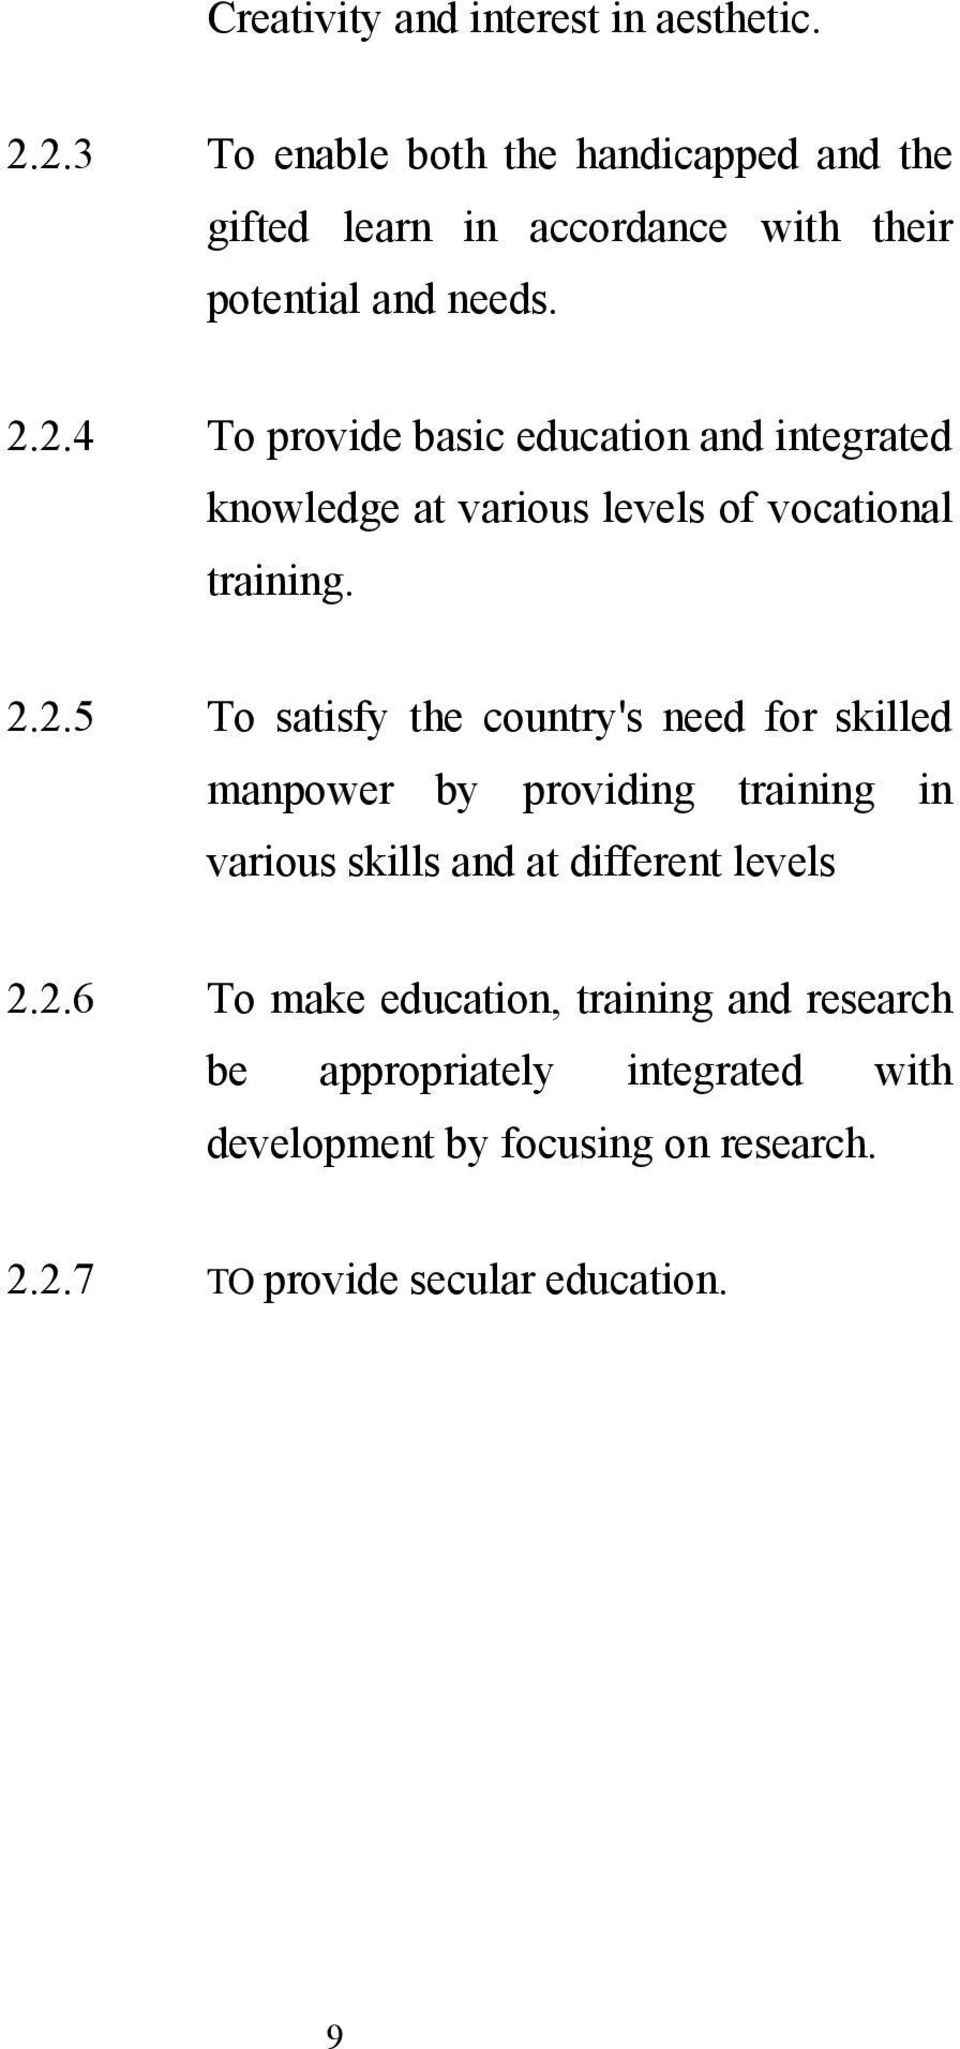 2.2.5 To satisfy the country's need for skilled manpower by providing training in various skills and at different levels 2.2.6 To make education, training and research be appropriately integrated with development by focusing on research.